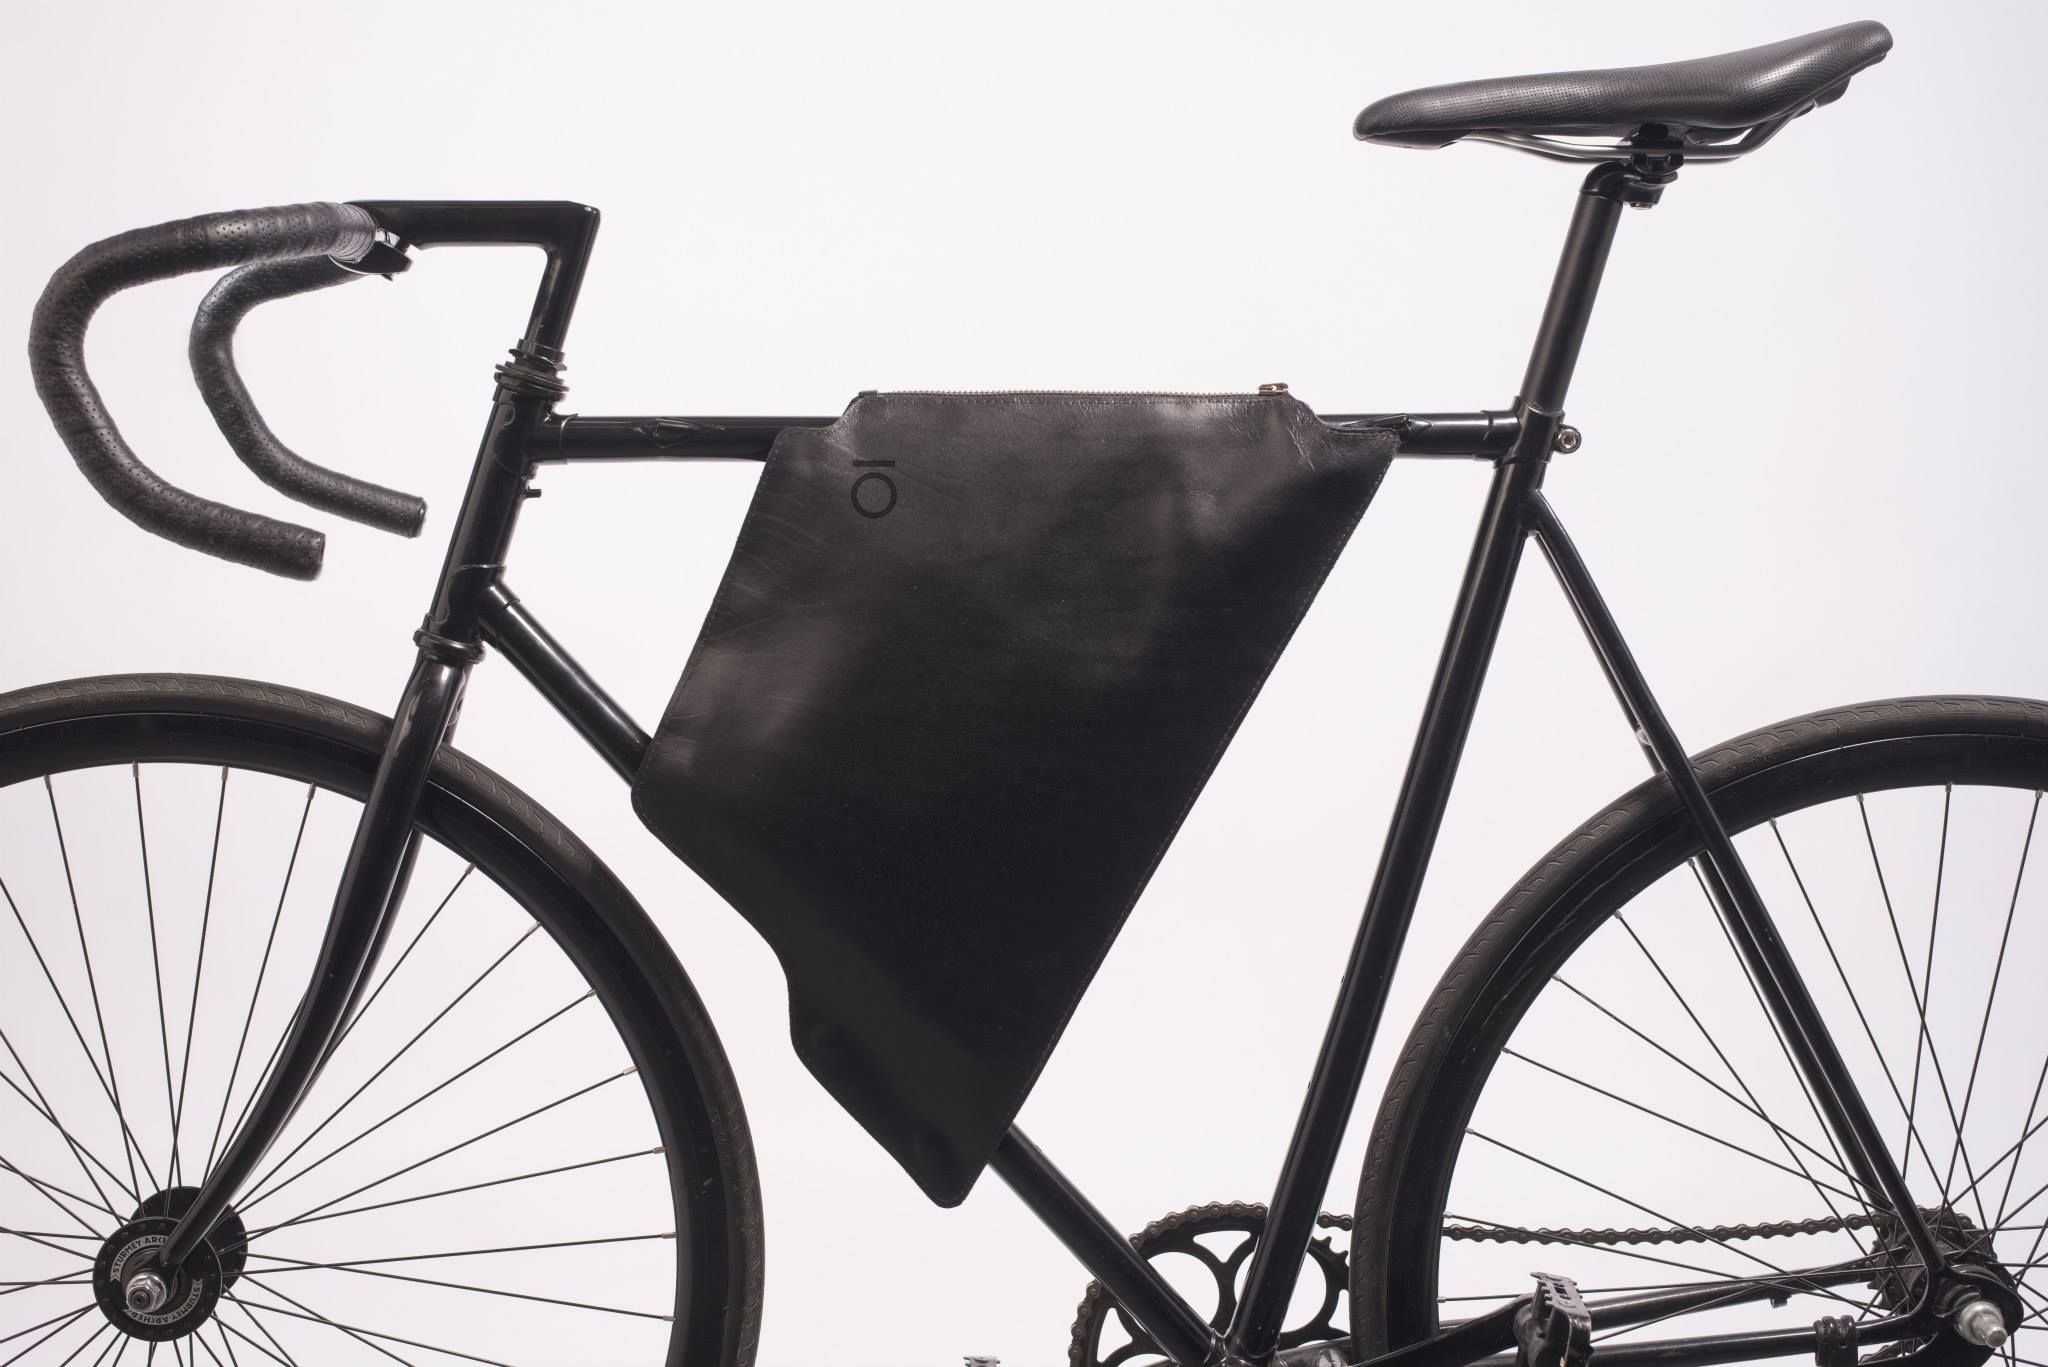 lift off | eyecatcher | Cycling bag, Bike leathers, Bike bag